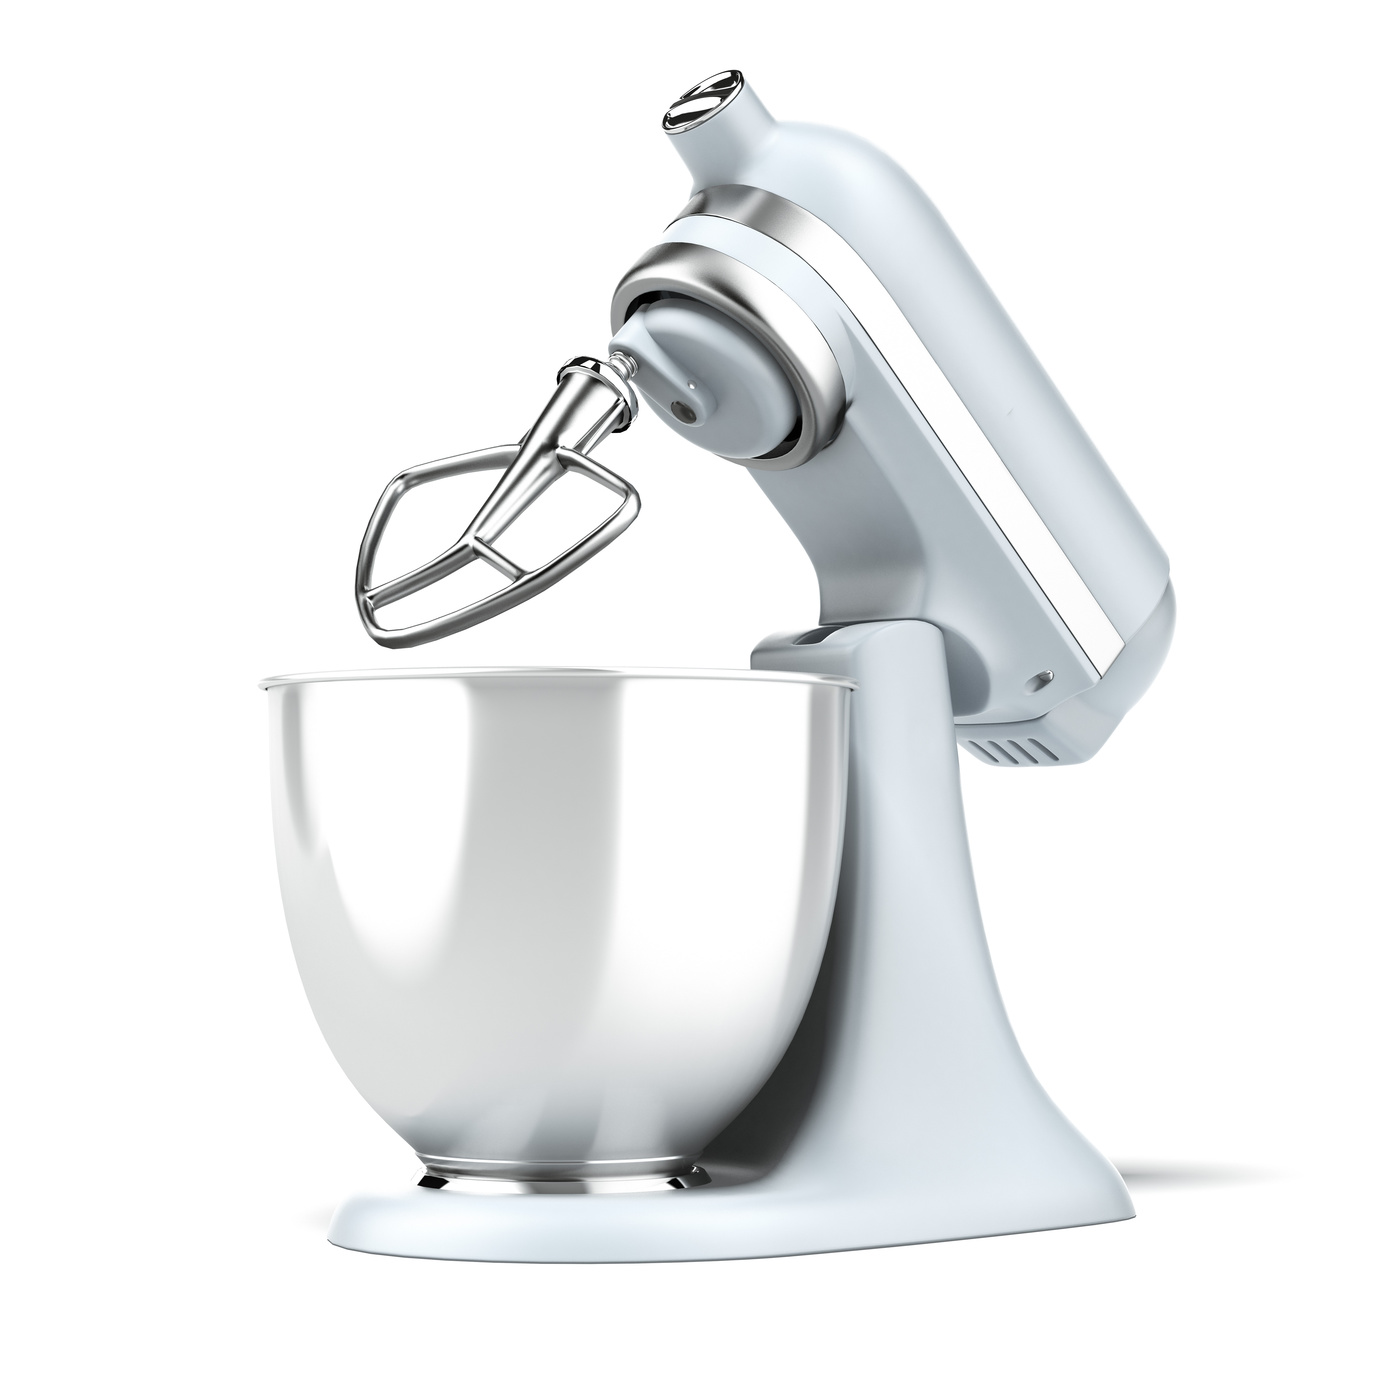 5 Questions You Should Ask Yourself Before Buying A Kitchen Mixer Kitchen Tools Small